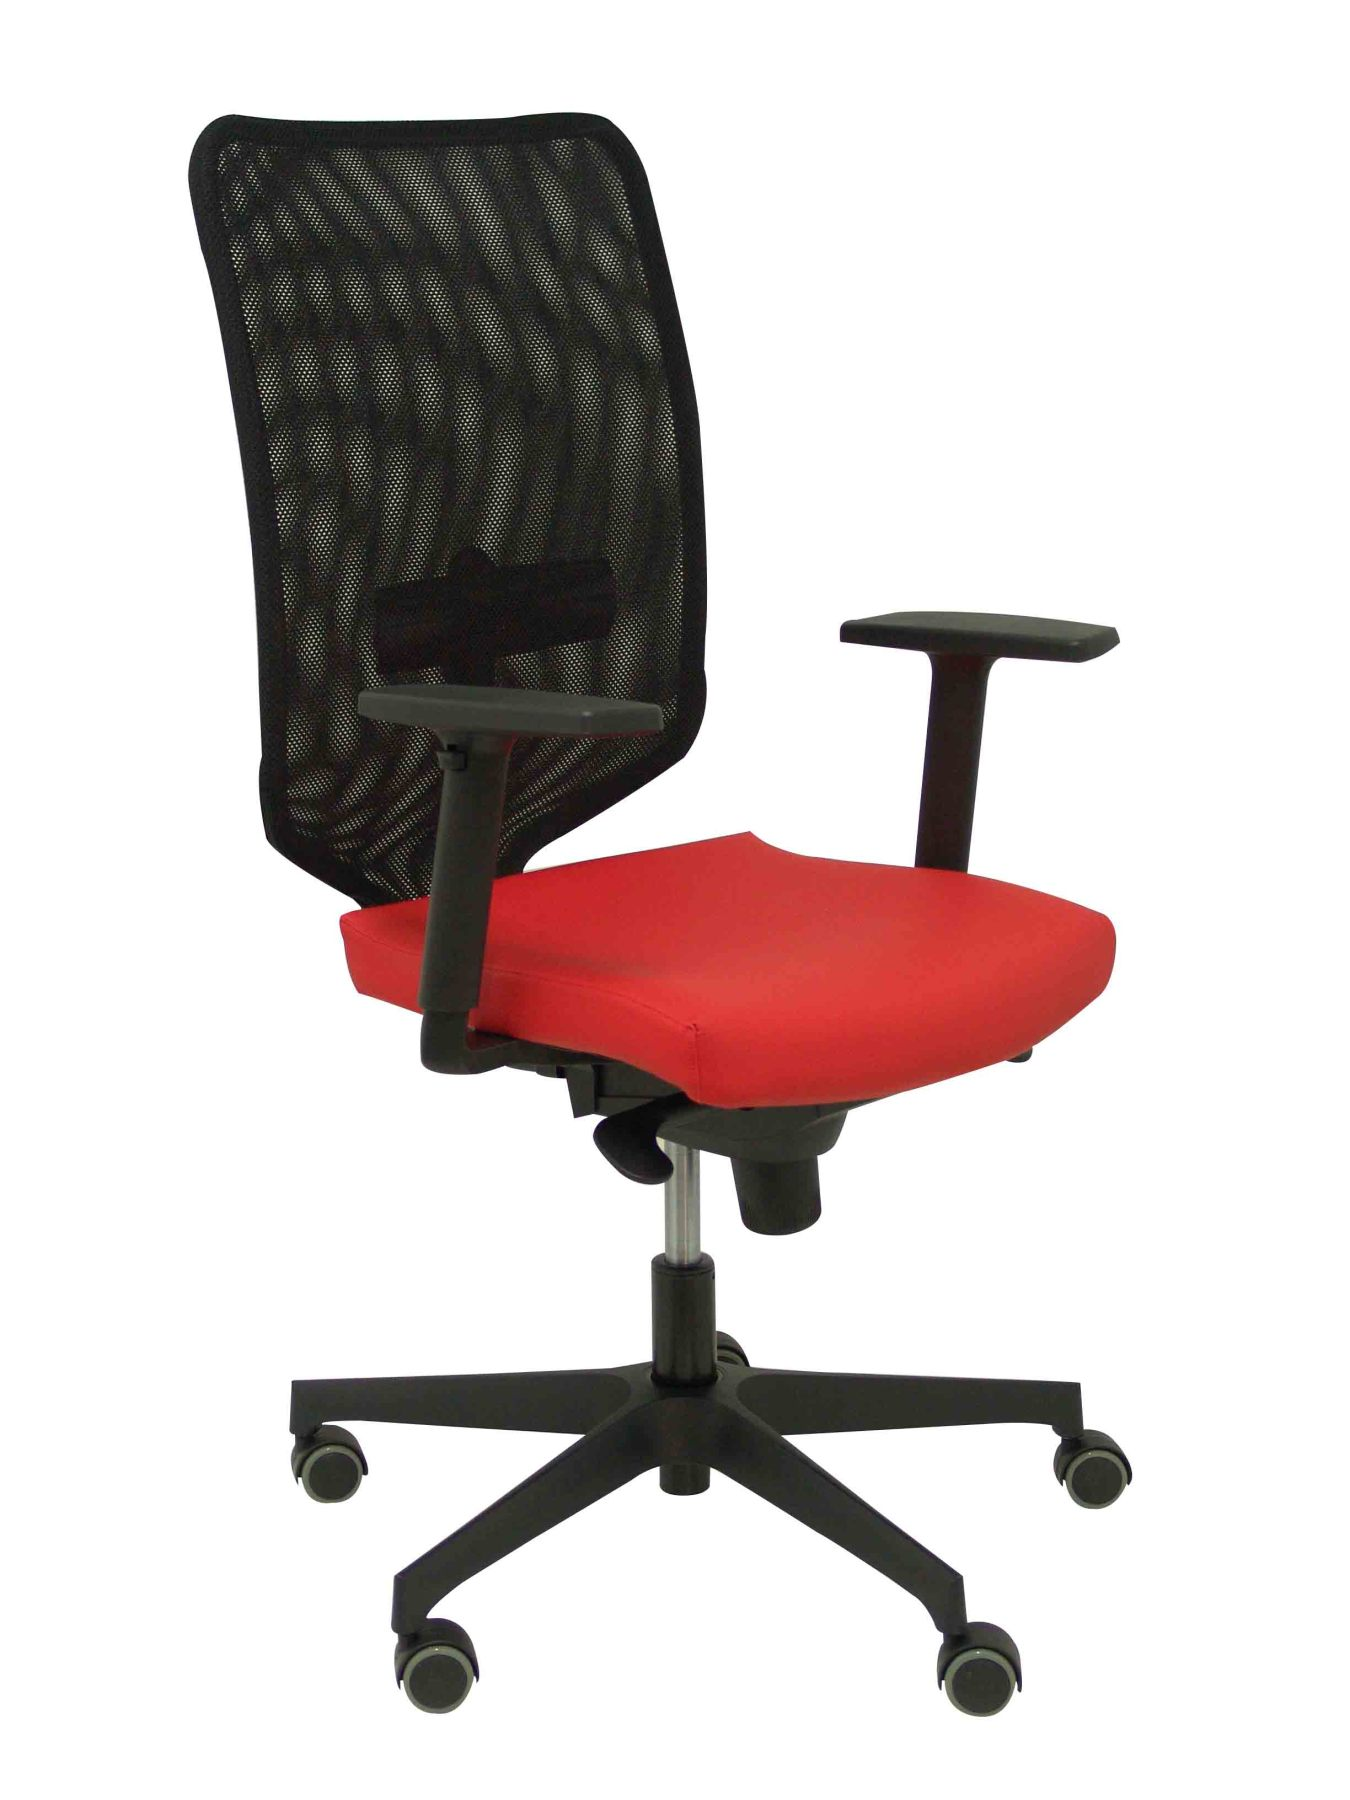 Ergonomic Office Chair With Mechanism Synchro And Height Adjustable Mesh Back In Black Color And Seat Tapi